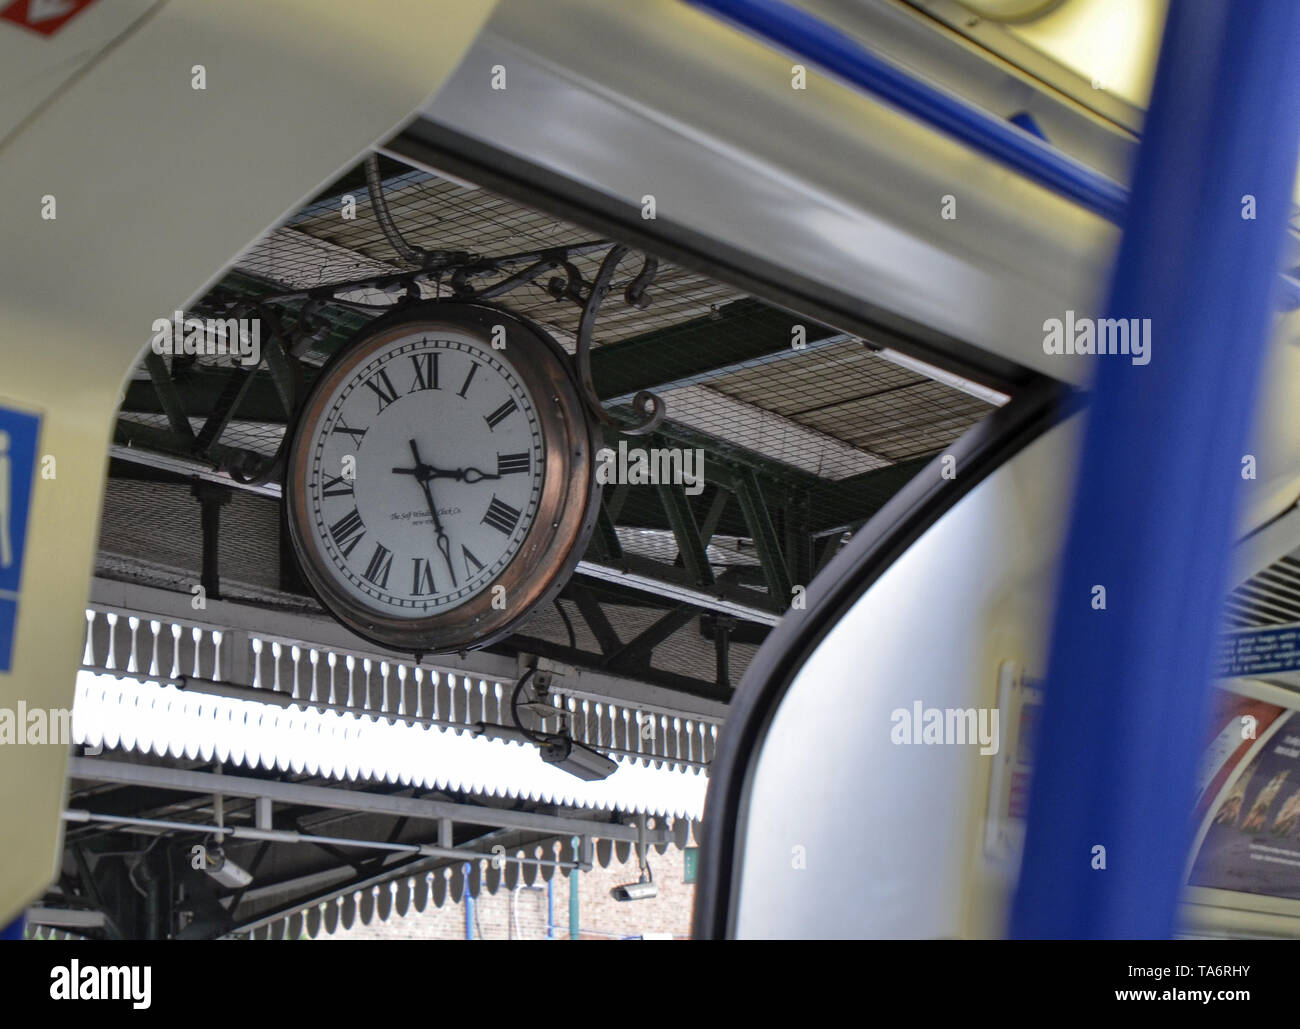 London, United Kingdom, June 14 2018. A vintage symbol of London: the clock with hands visible in almost all metro stops. With its retro look, it stan - Stock Image